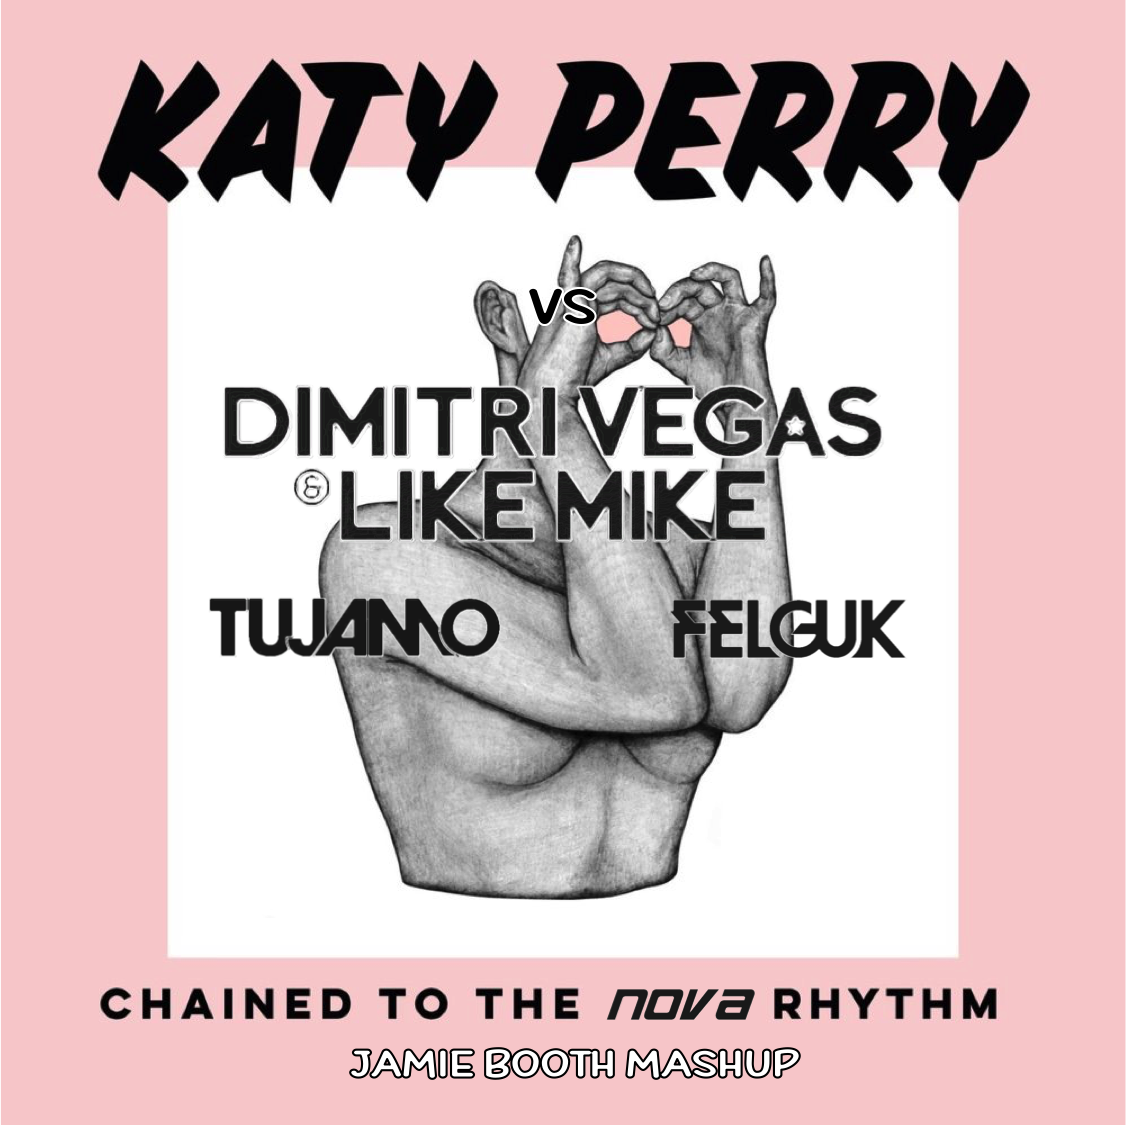 Chained To the Nova Rhythm (Jamie Booth Mashup) [Extended] - Katy Perry, Skip Marley vs DVLM